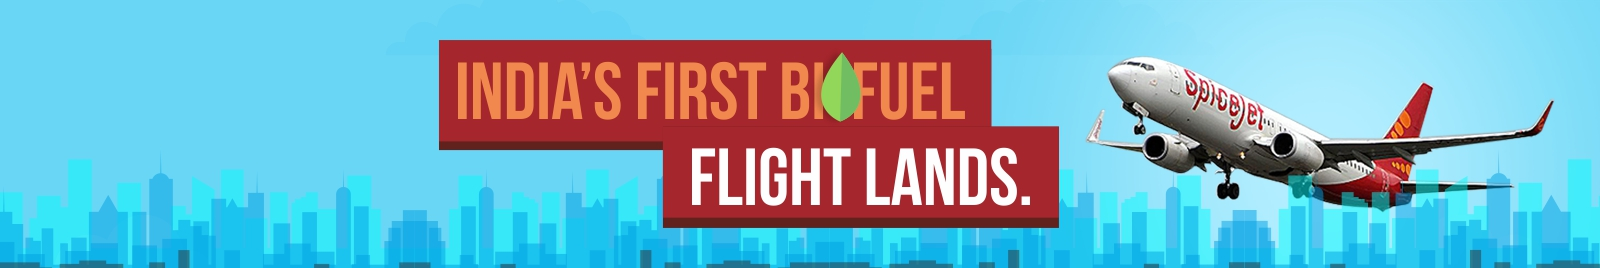 India's first biofuel flight lands